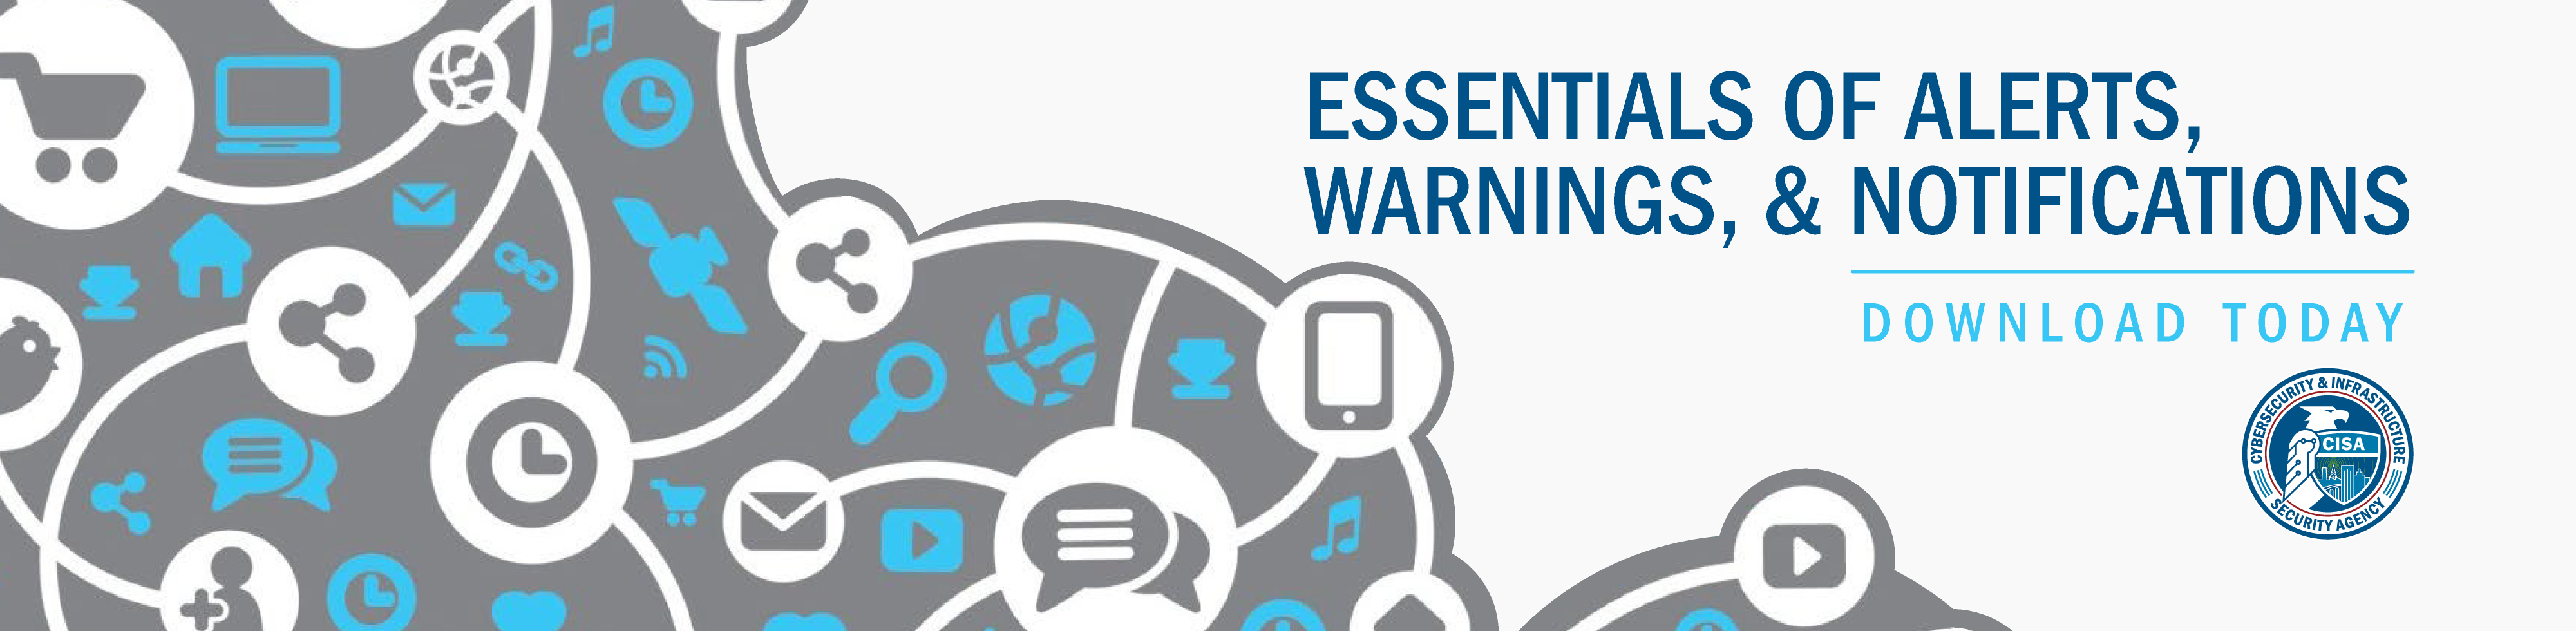 SAFECOM/NCSWIC Announces the Release of Essentials of Alerts, Warnings, and Notifications